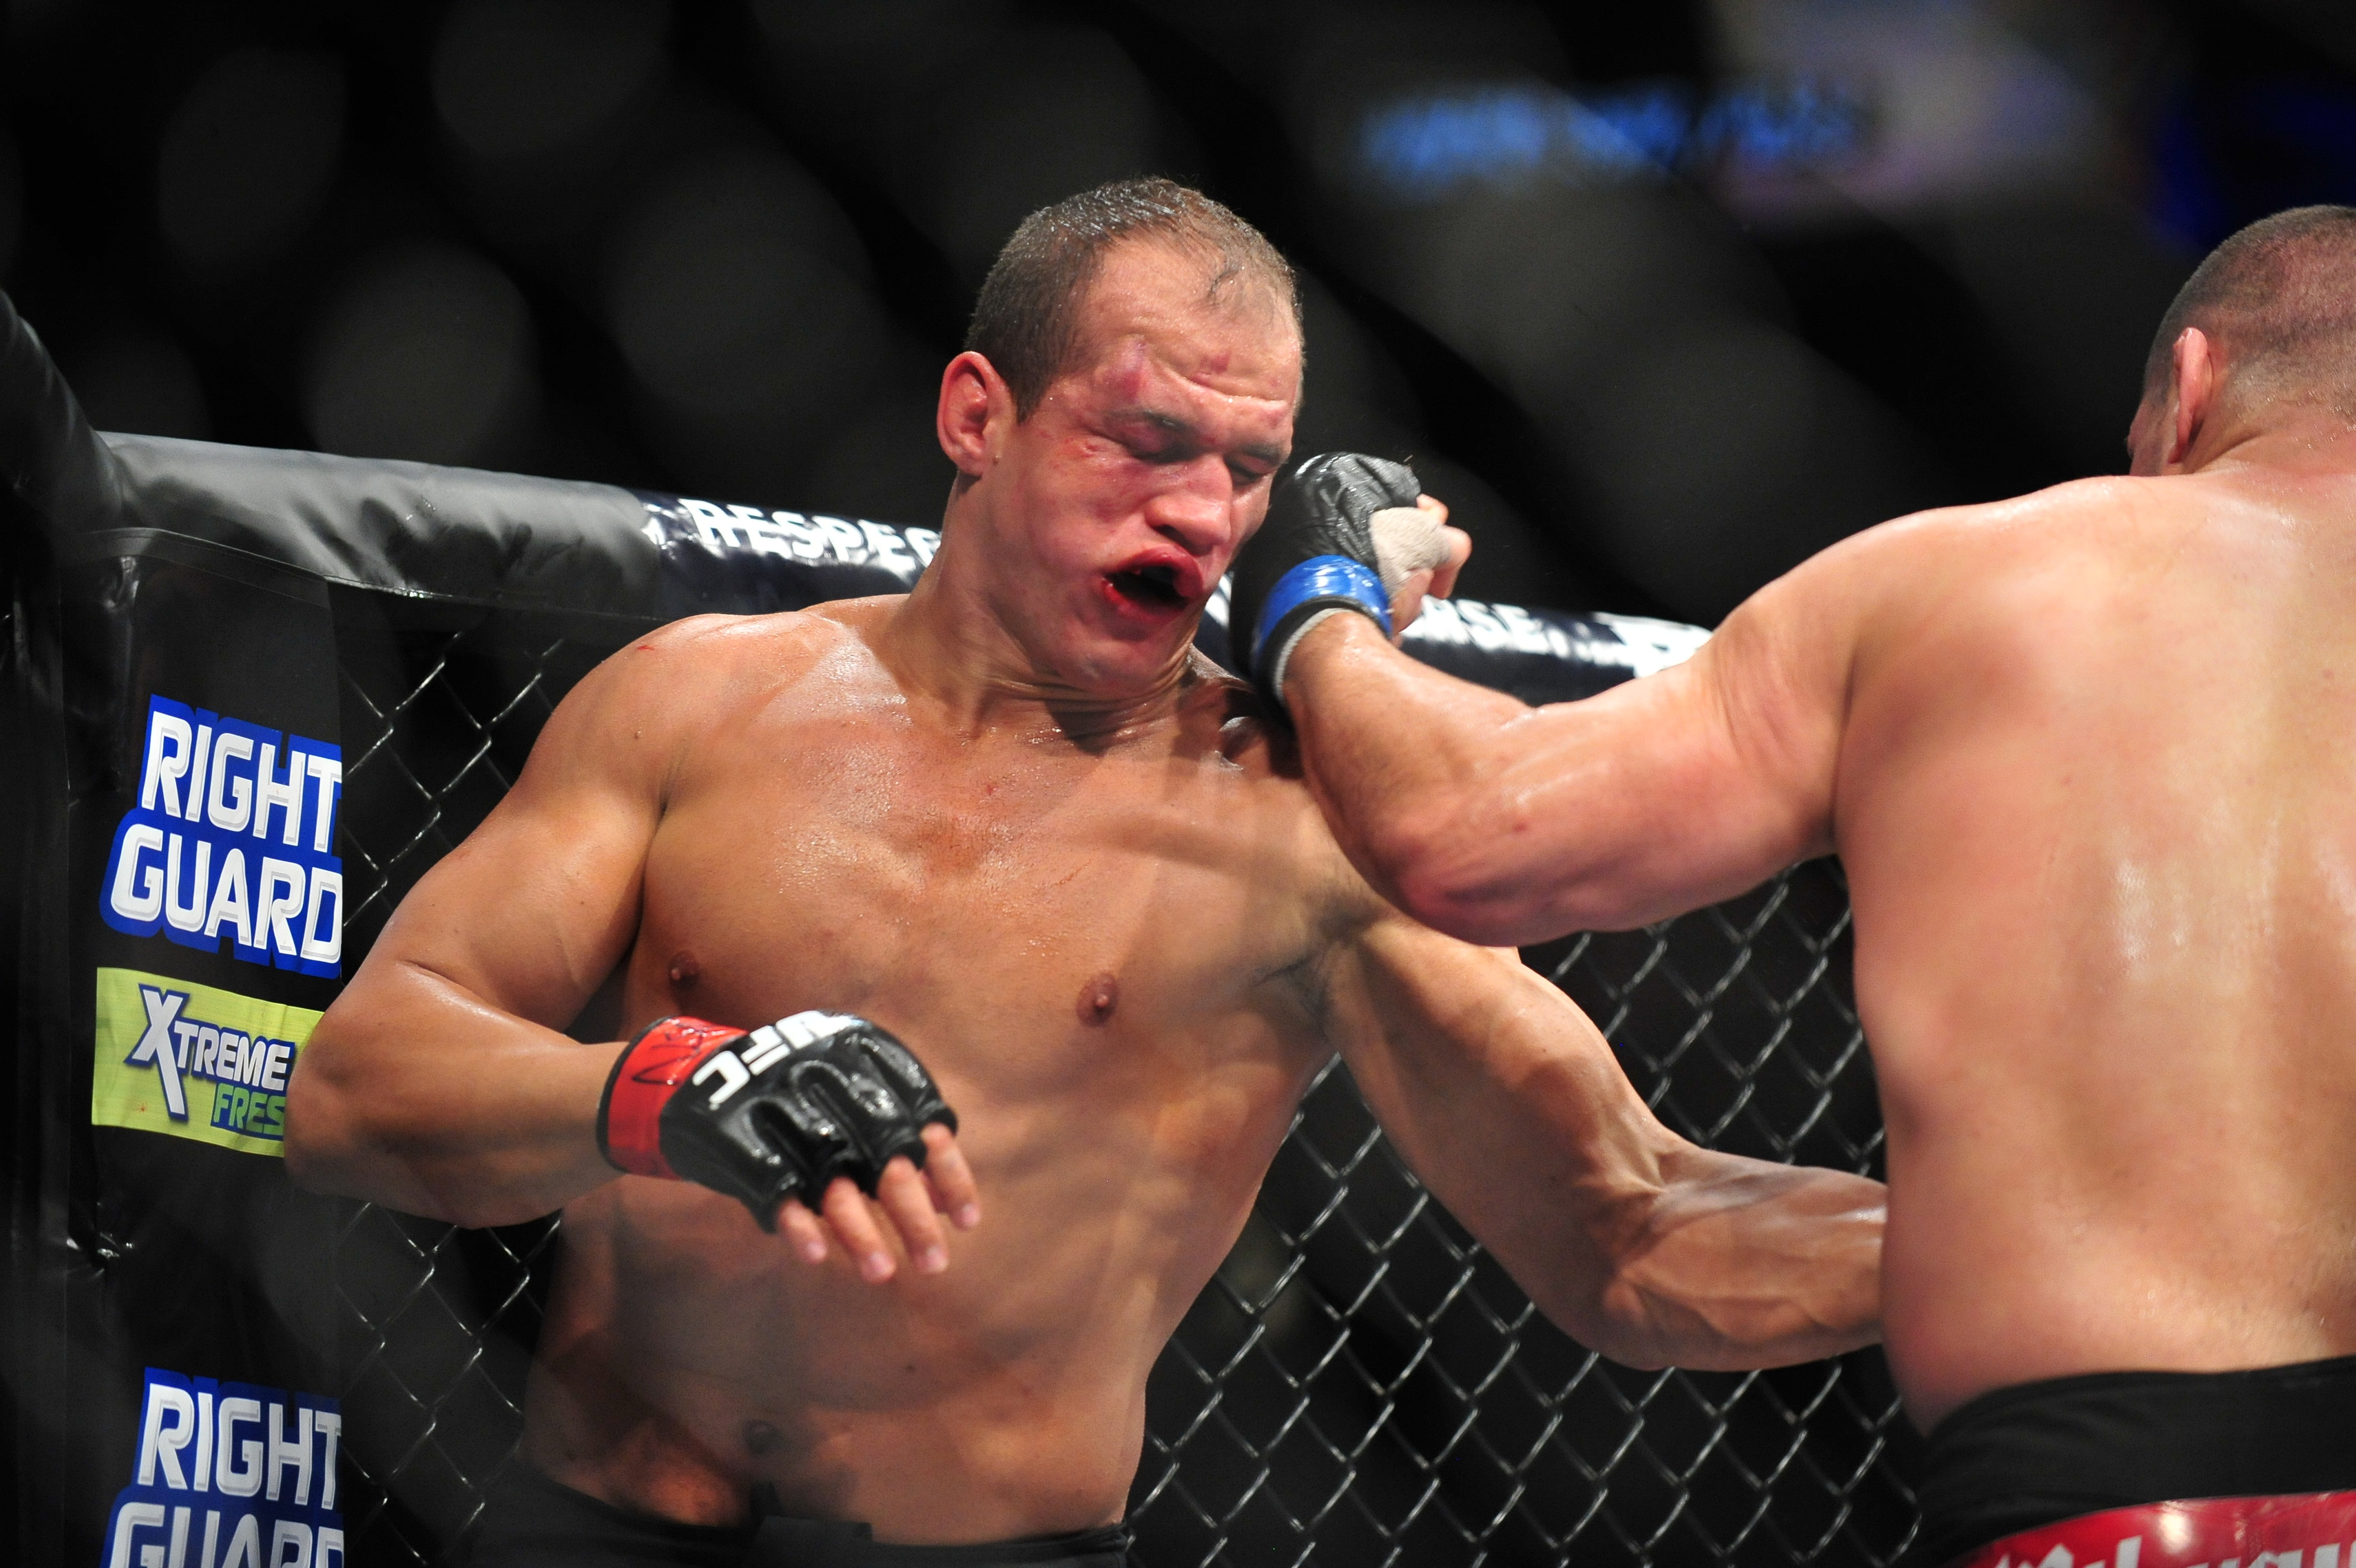 UFC 155: Dos Santos vs. Velasquez 2 - Bloody Elbow